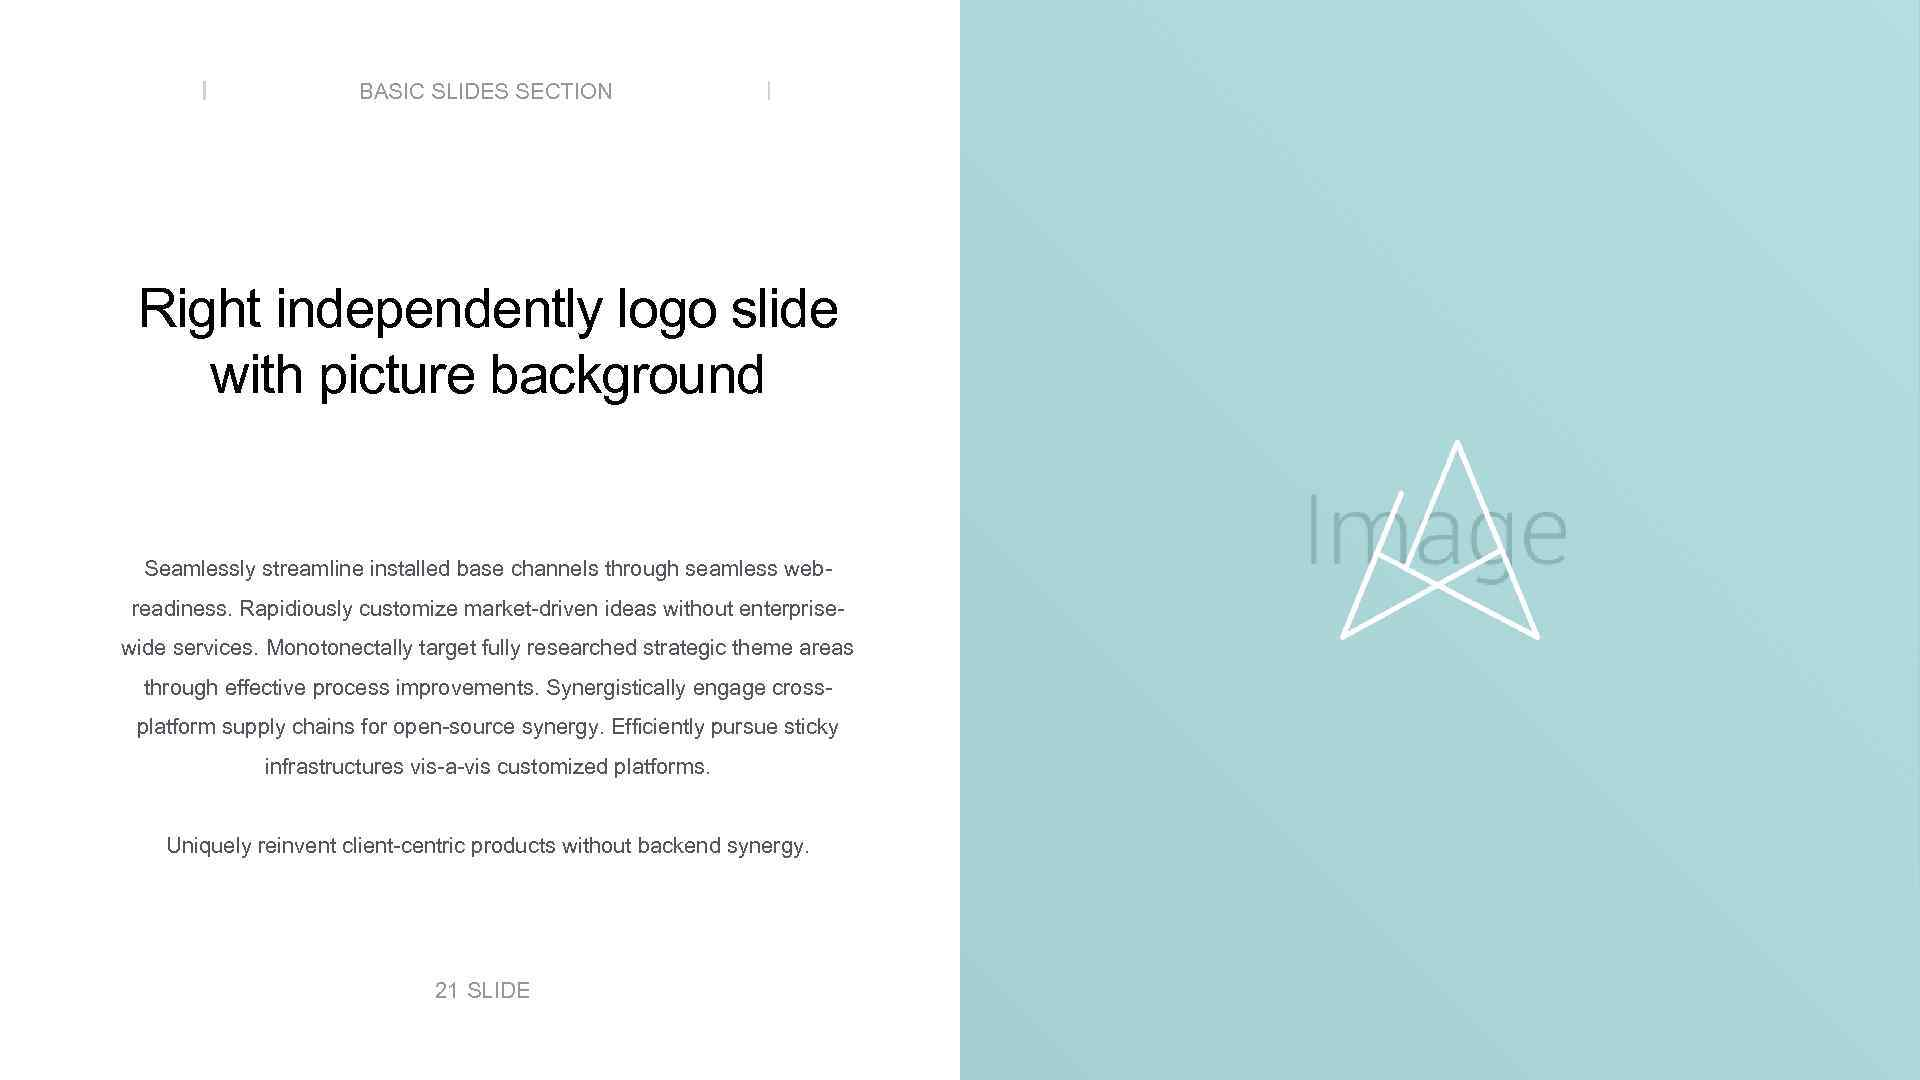 BASIC SLIDES SECTION Right independently logo slide with picture background Seamlessly streamline installed base